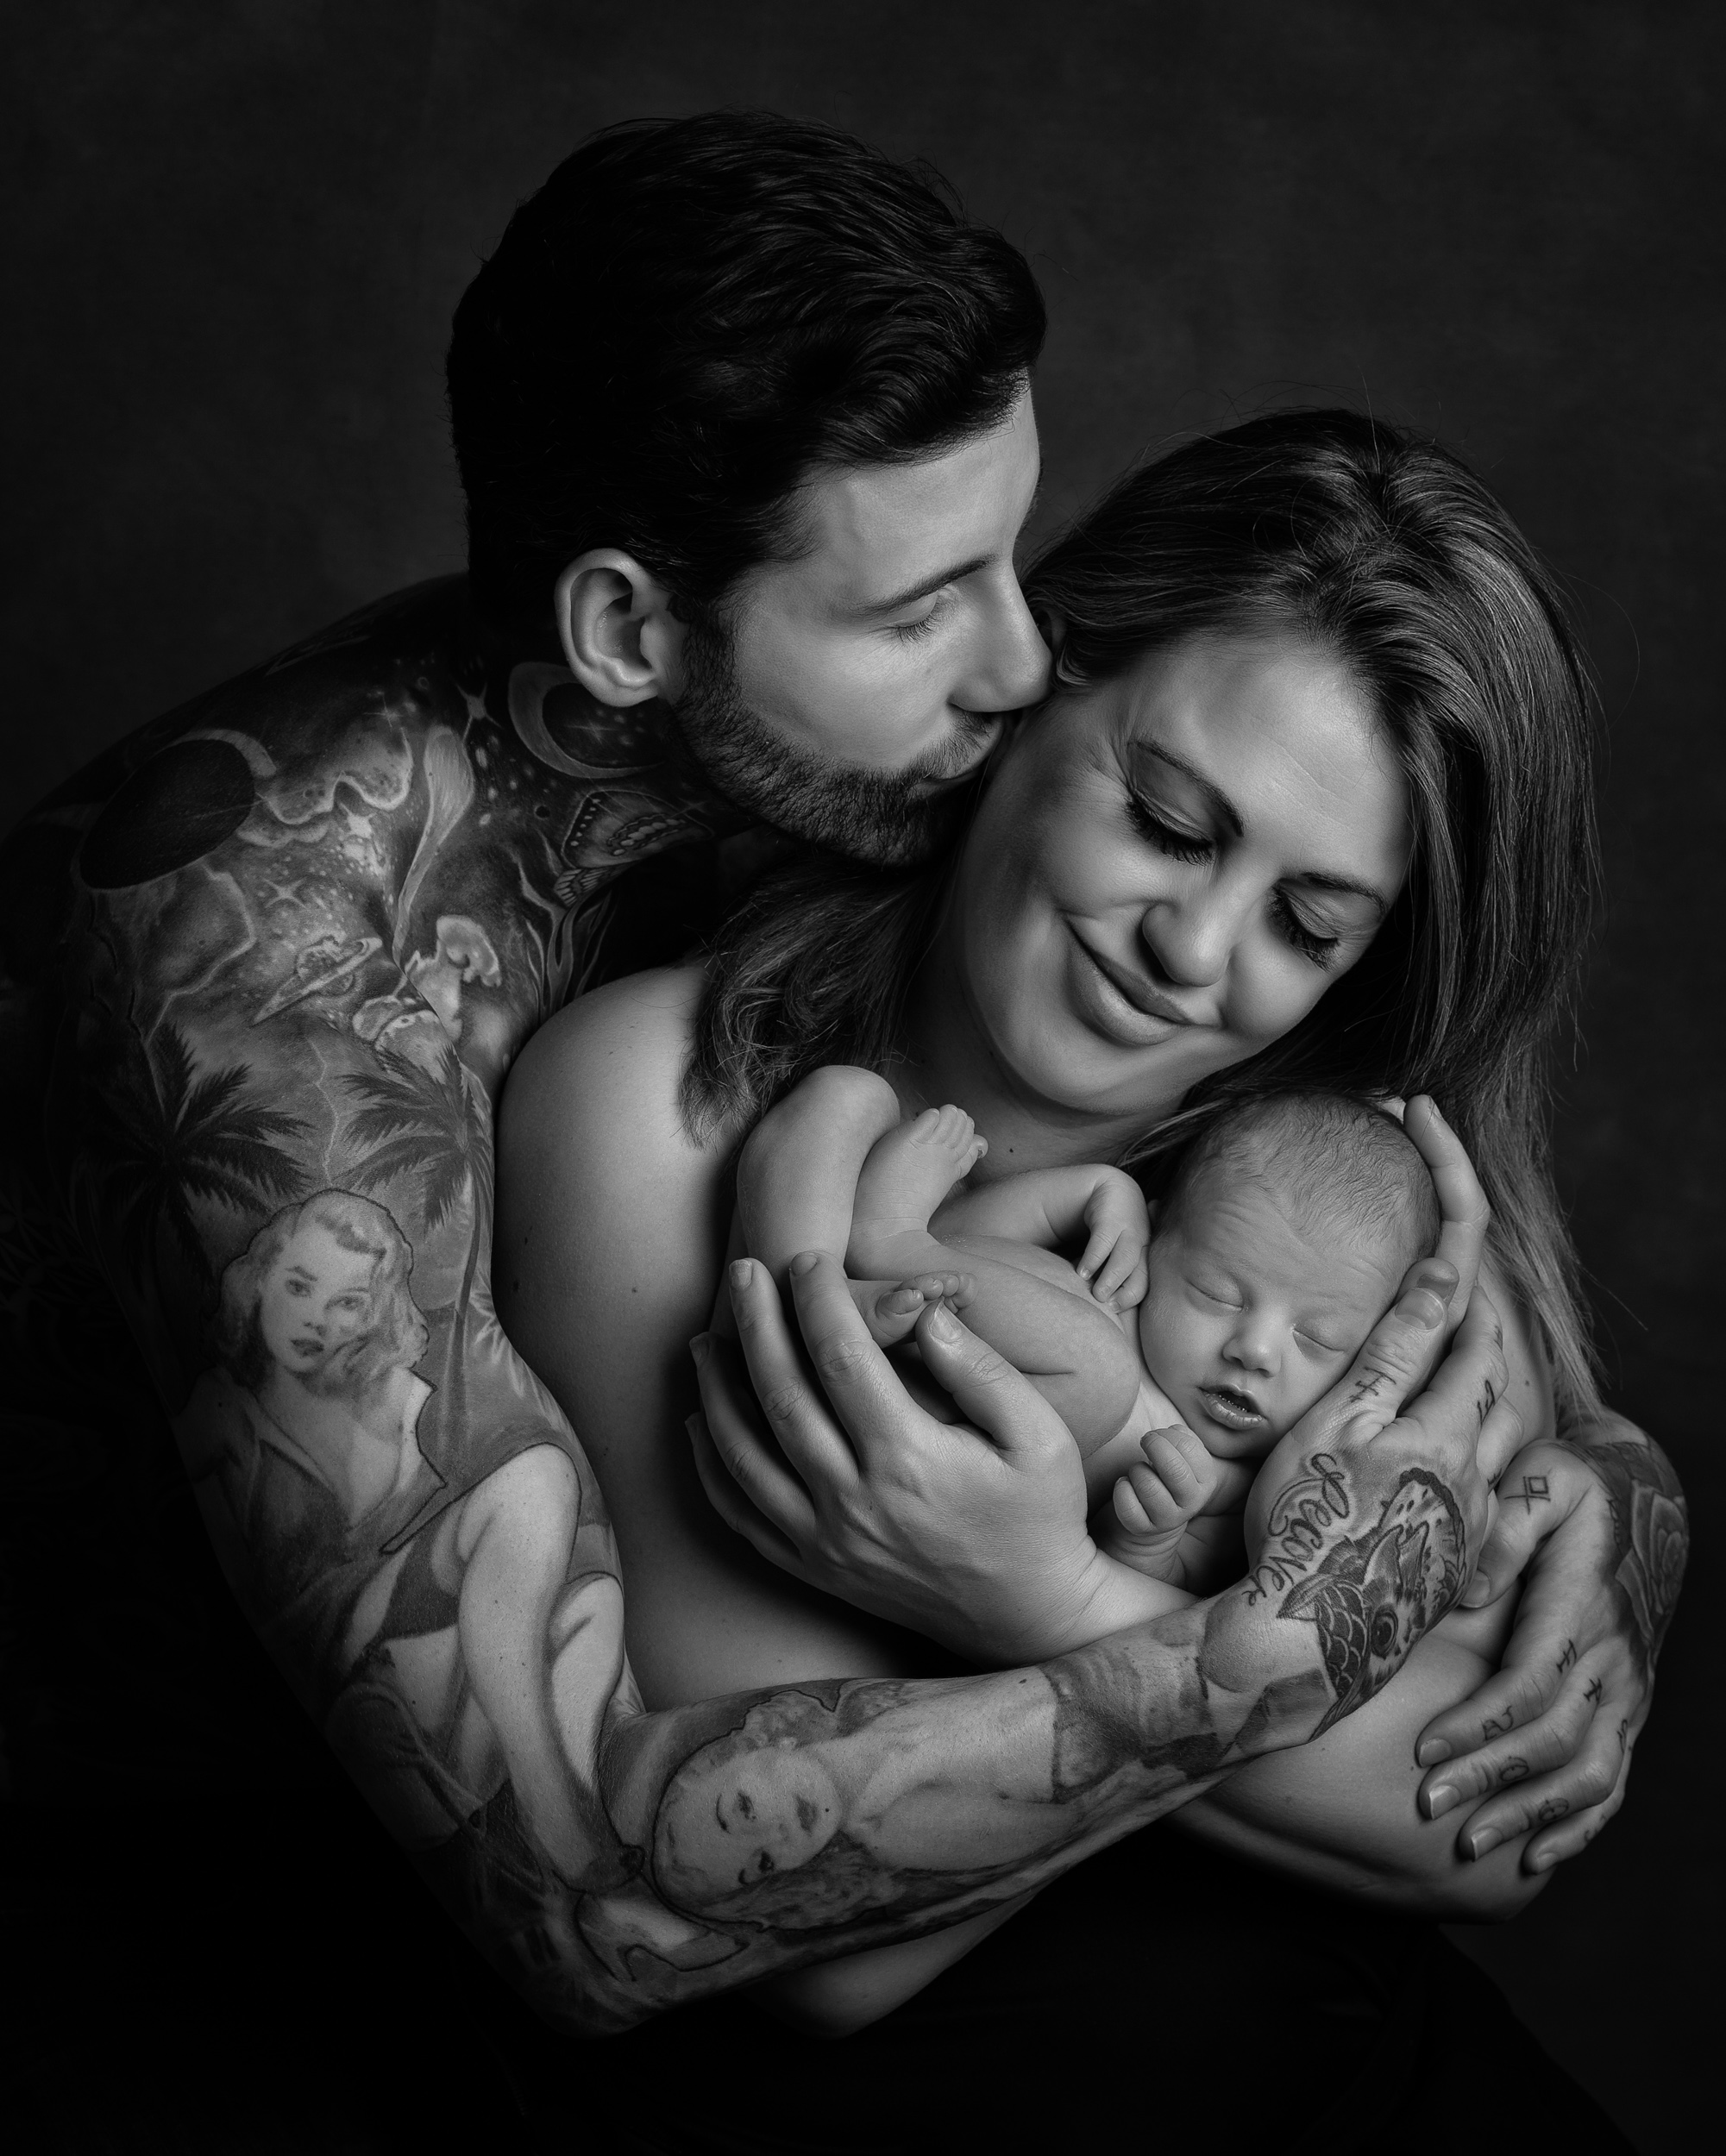 Jeremy McConnell and his newborn baby girl Storm in black and white by Cheshire newborn photographer in Sandbach